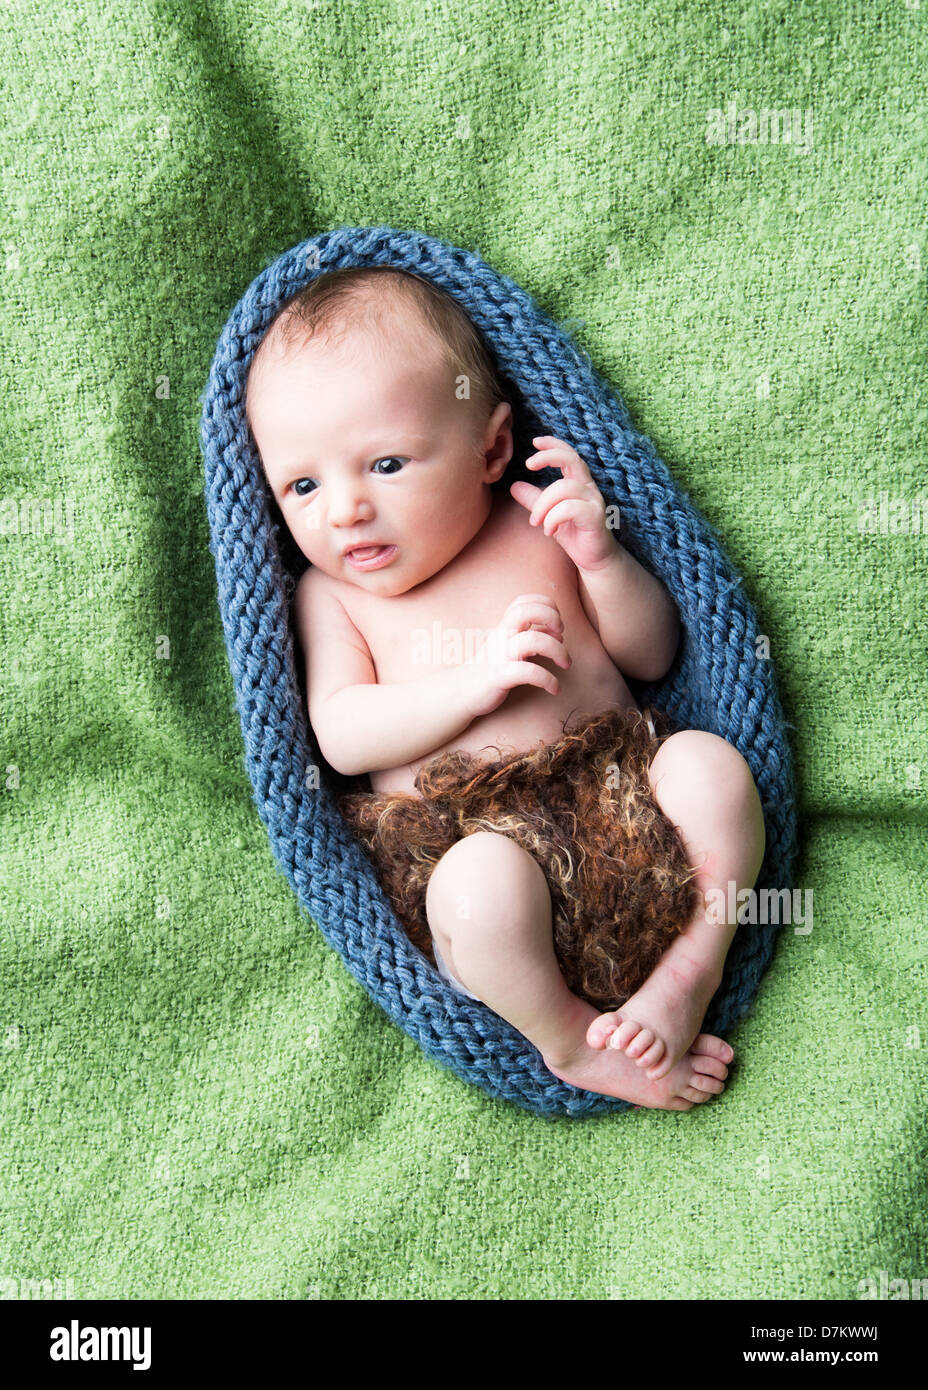 baby cocoon 2 - Stock Image